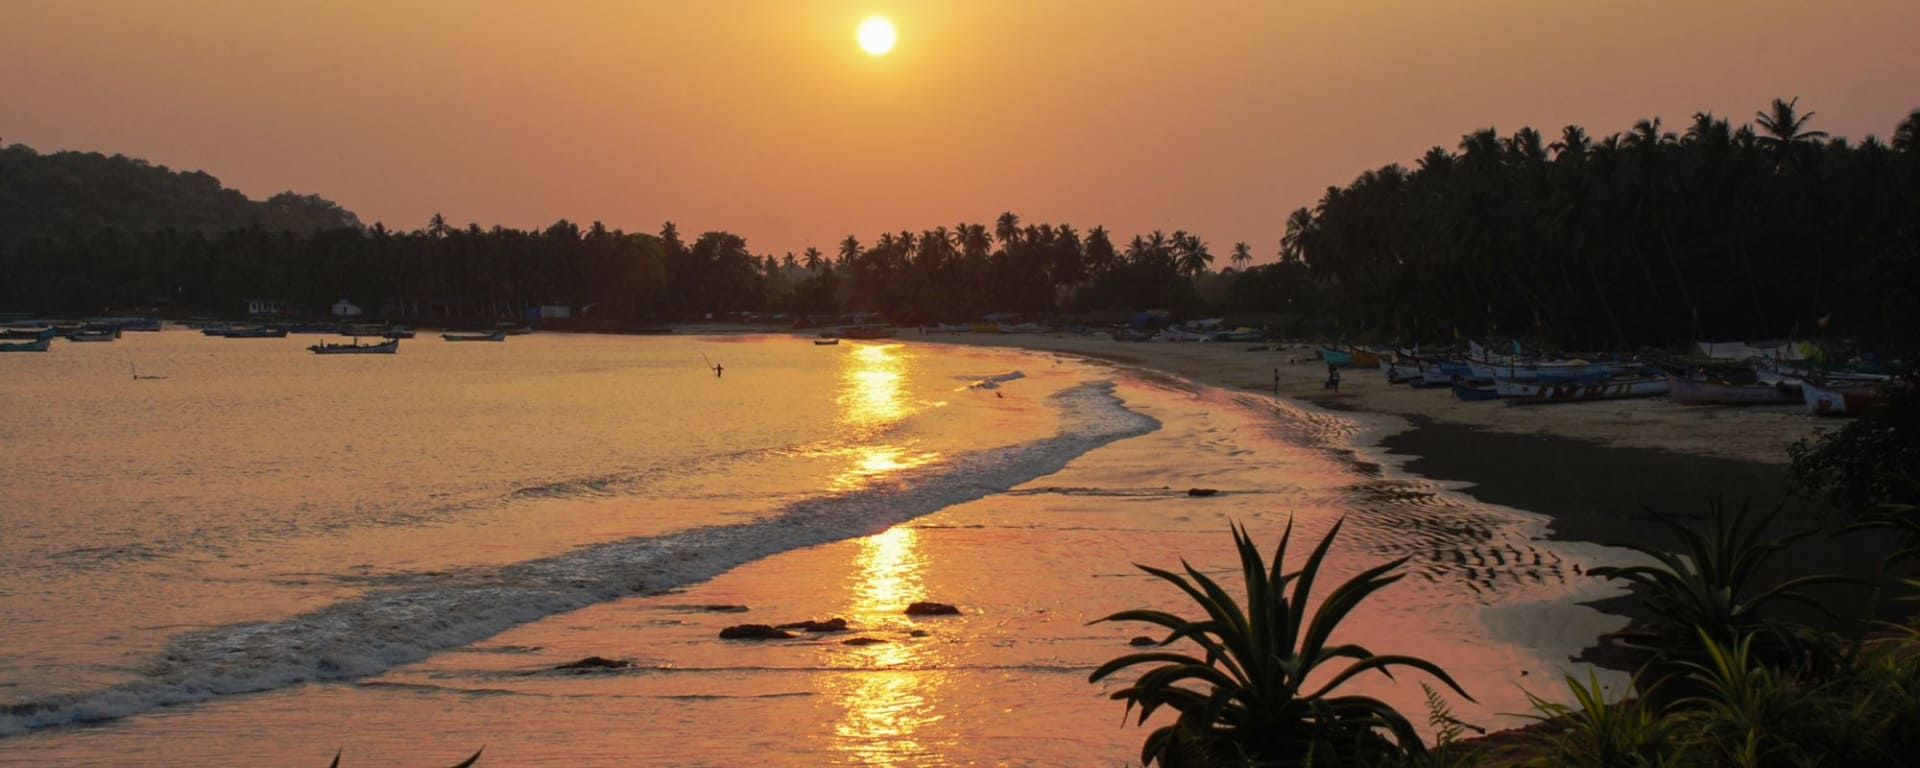 Ahilya by the Sea in Goa: Beach at Sunset